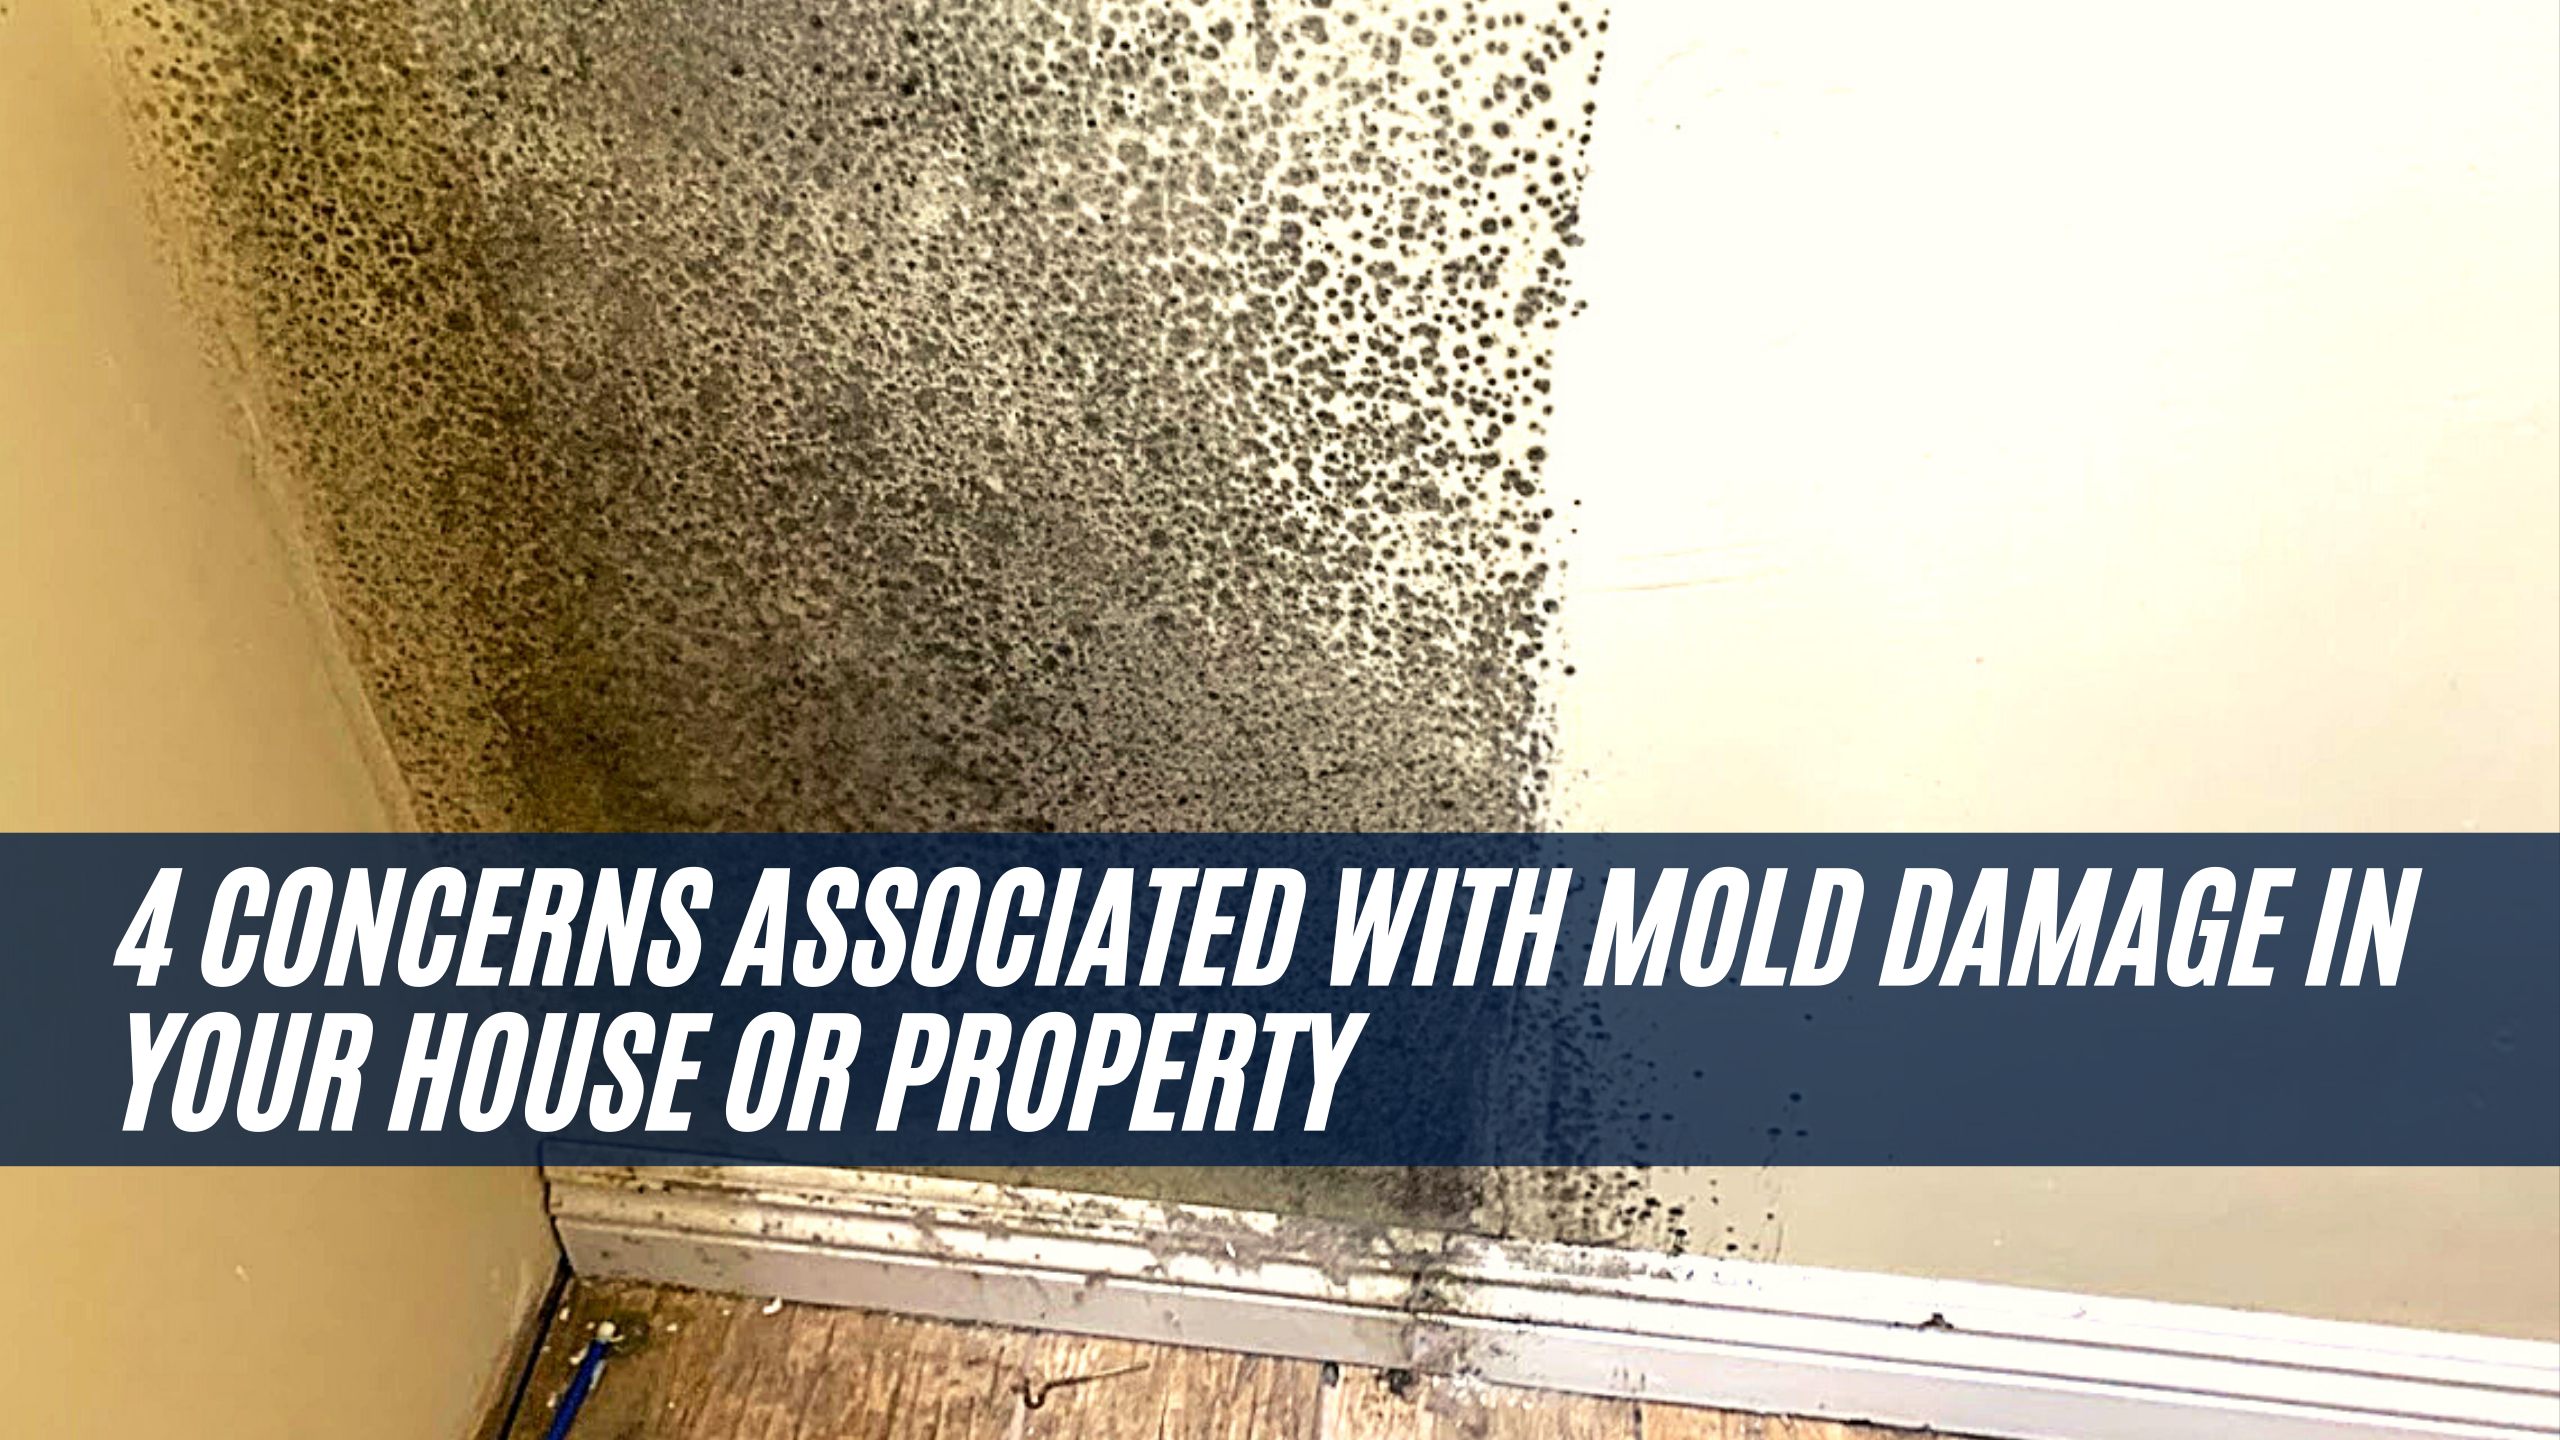 4 concerns associated with Mold damage in your House or Property